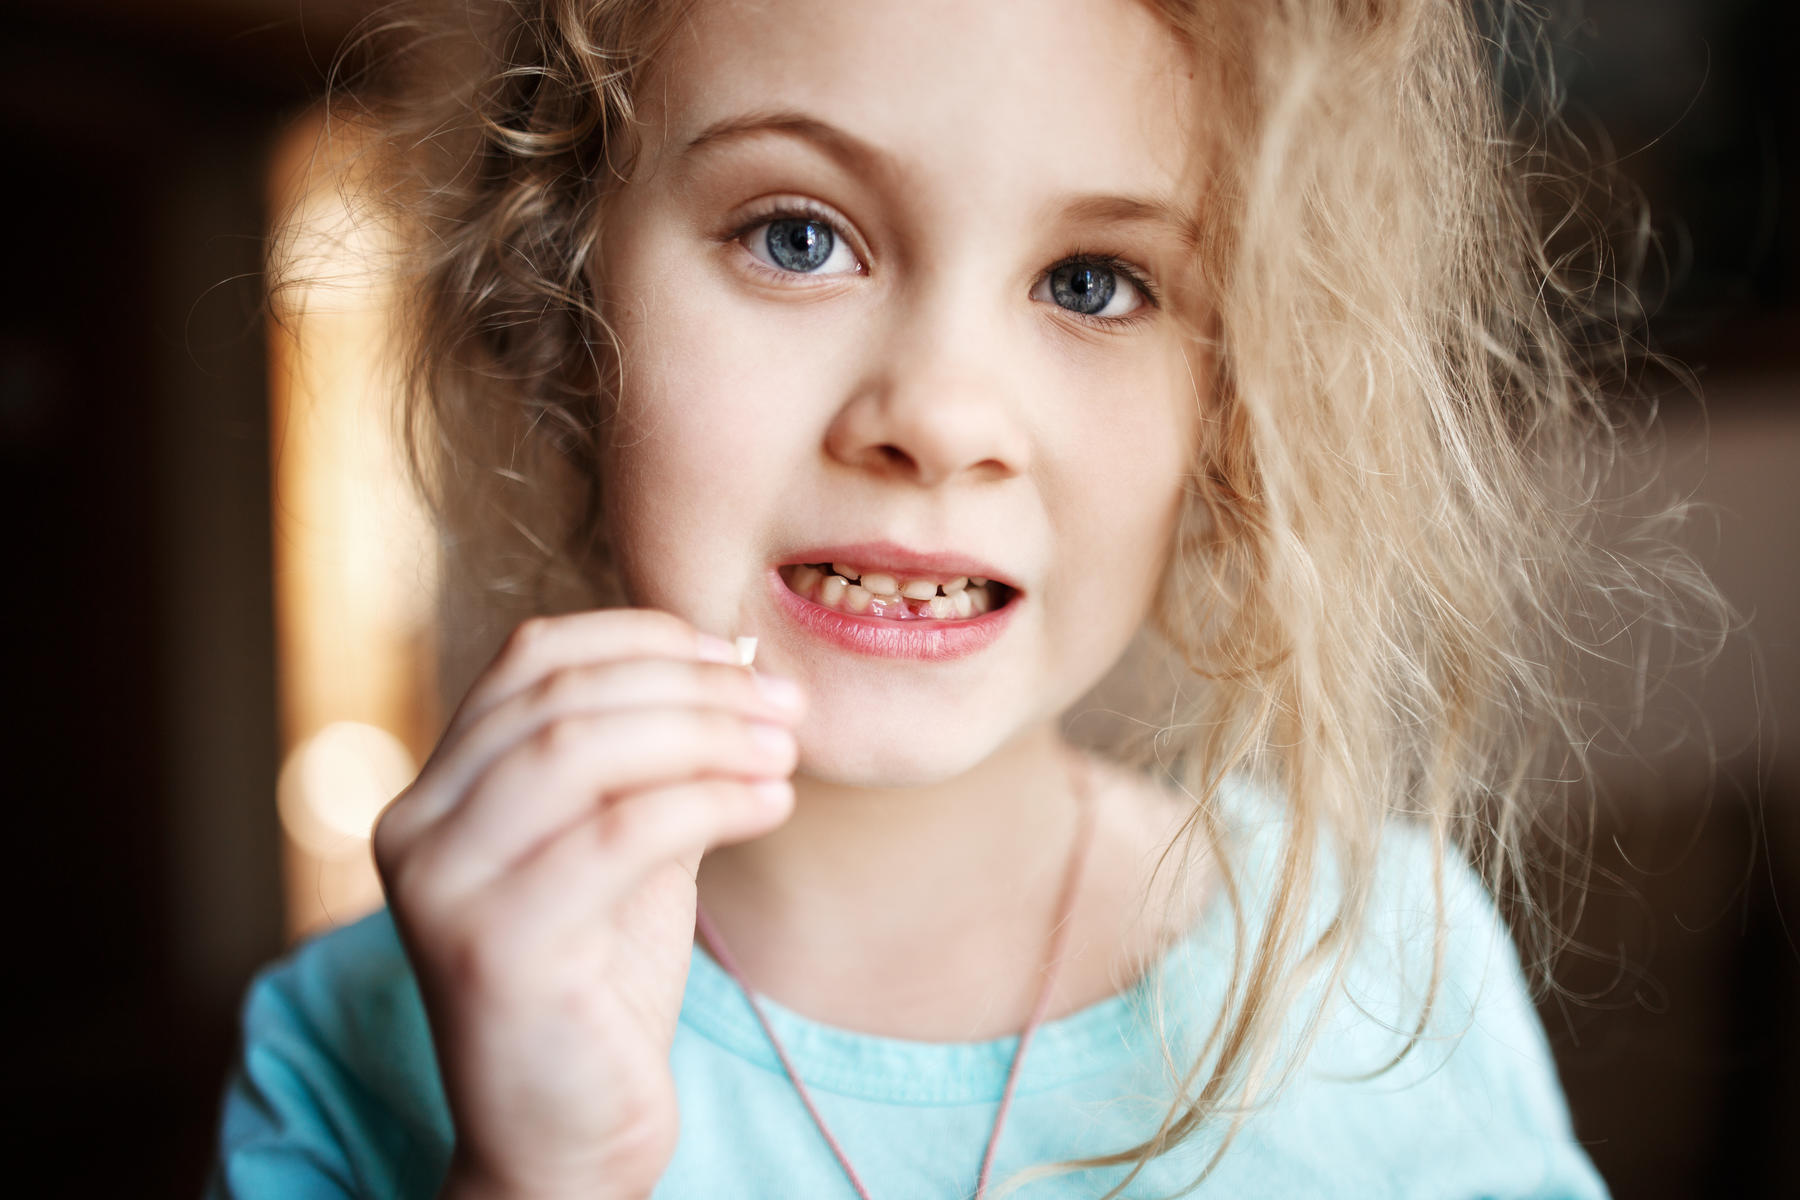 Missing Tooth Girl